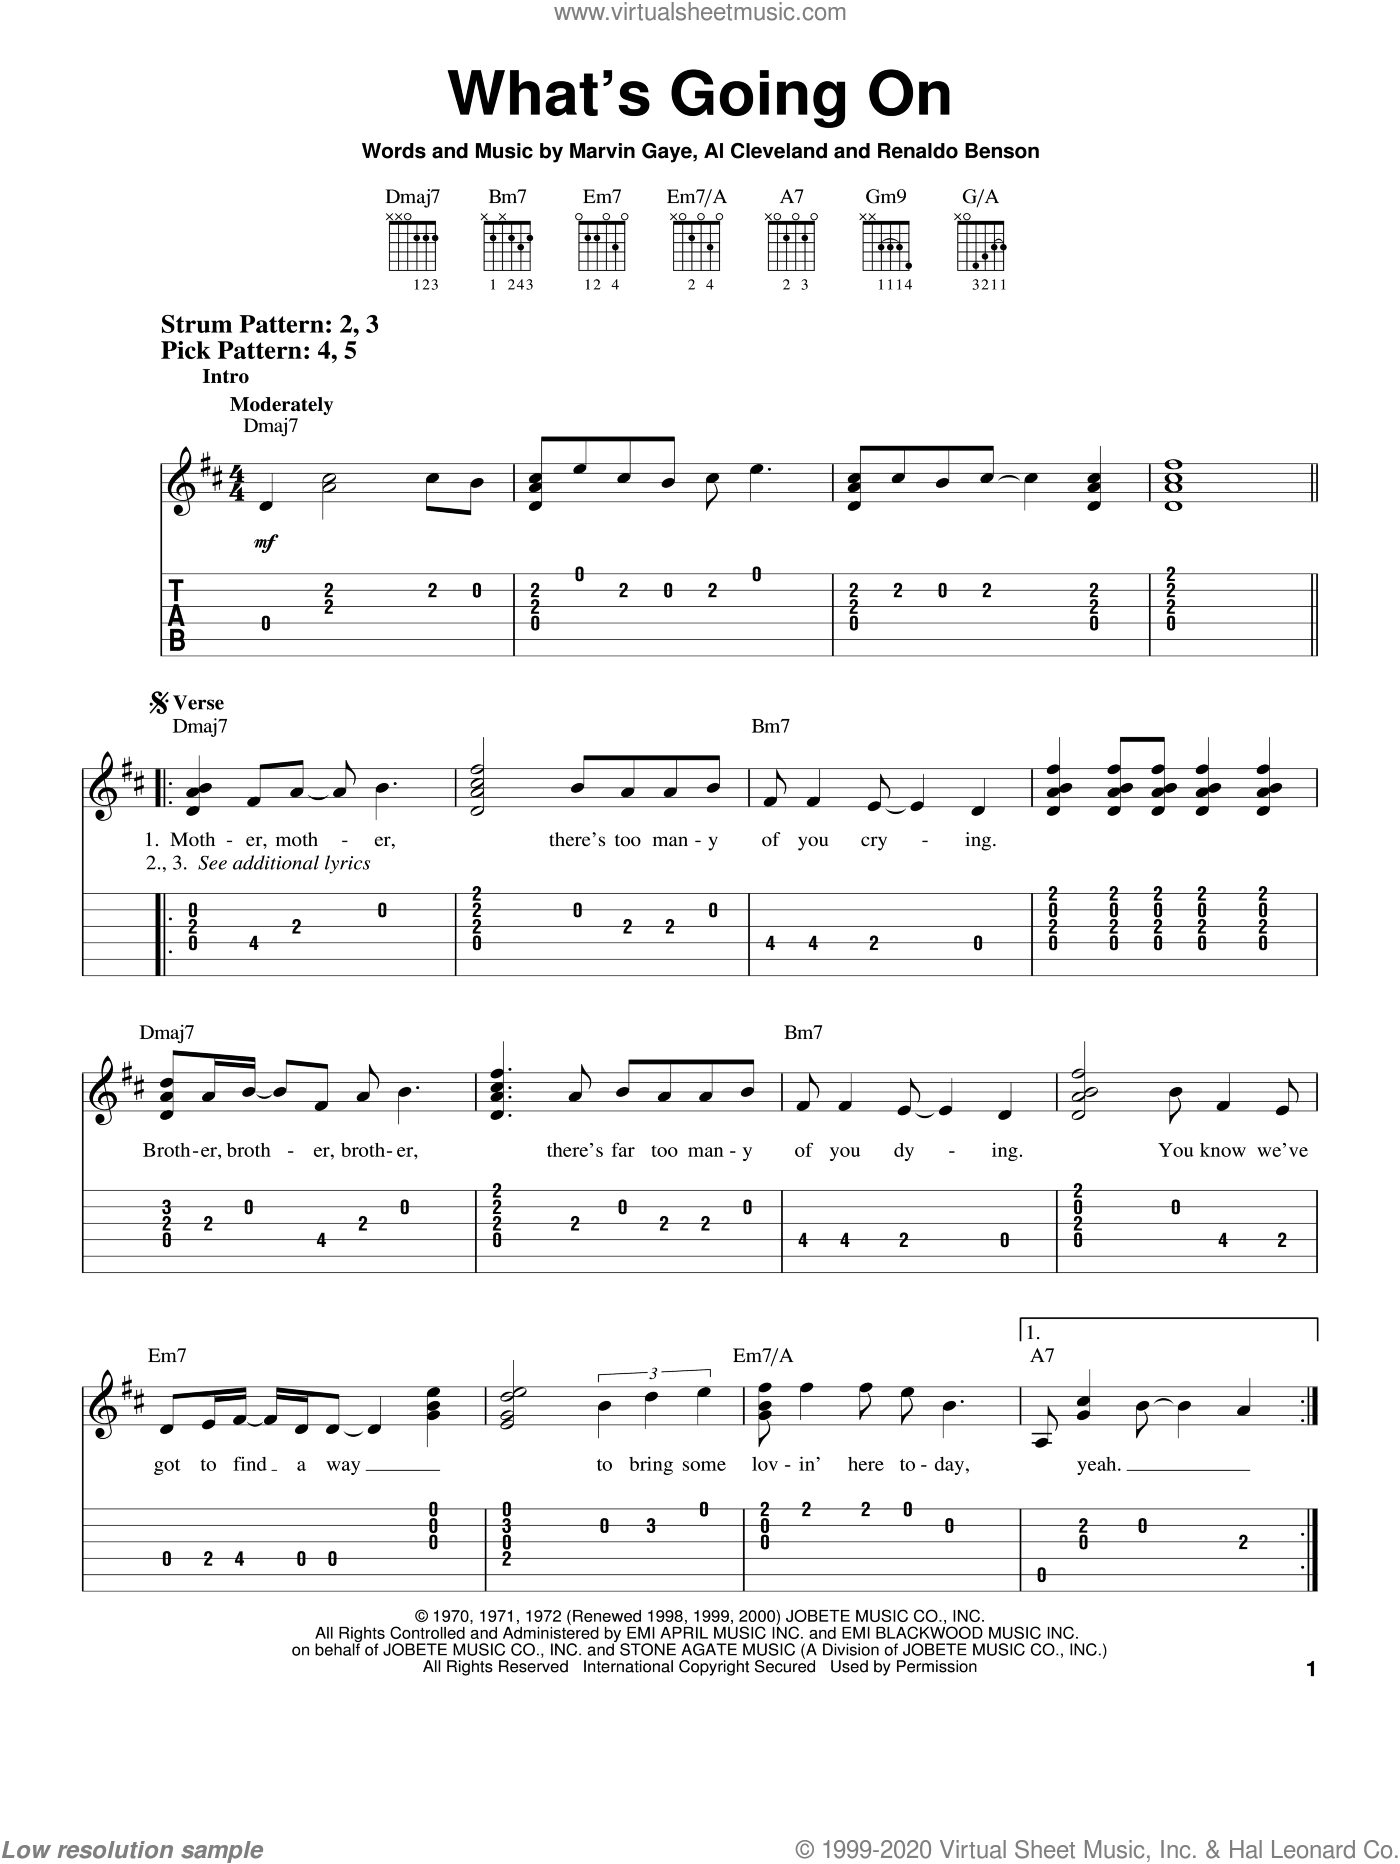 What's Going On sheet music for guitar solo (chords) by Renaldo Benson